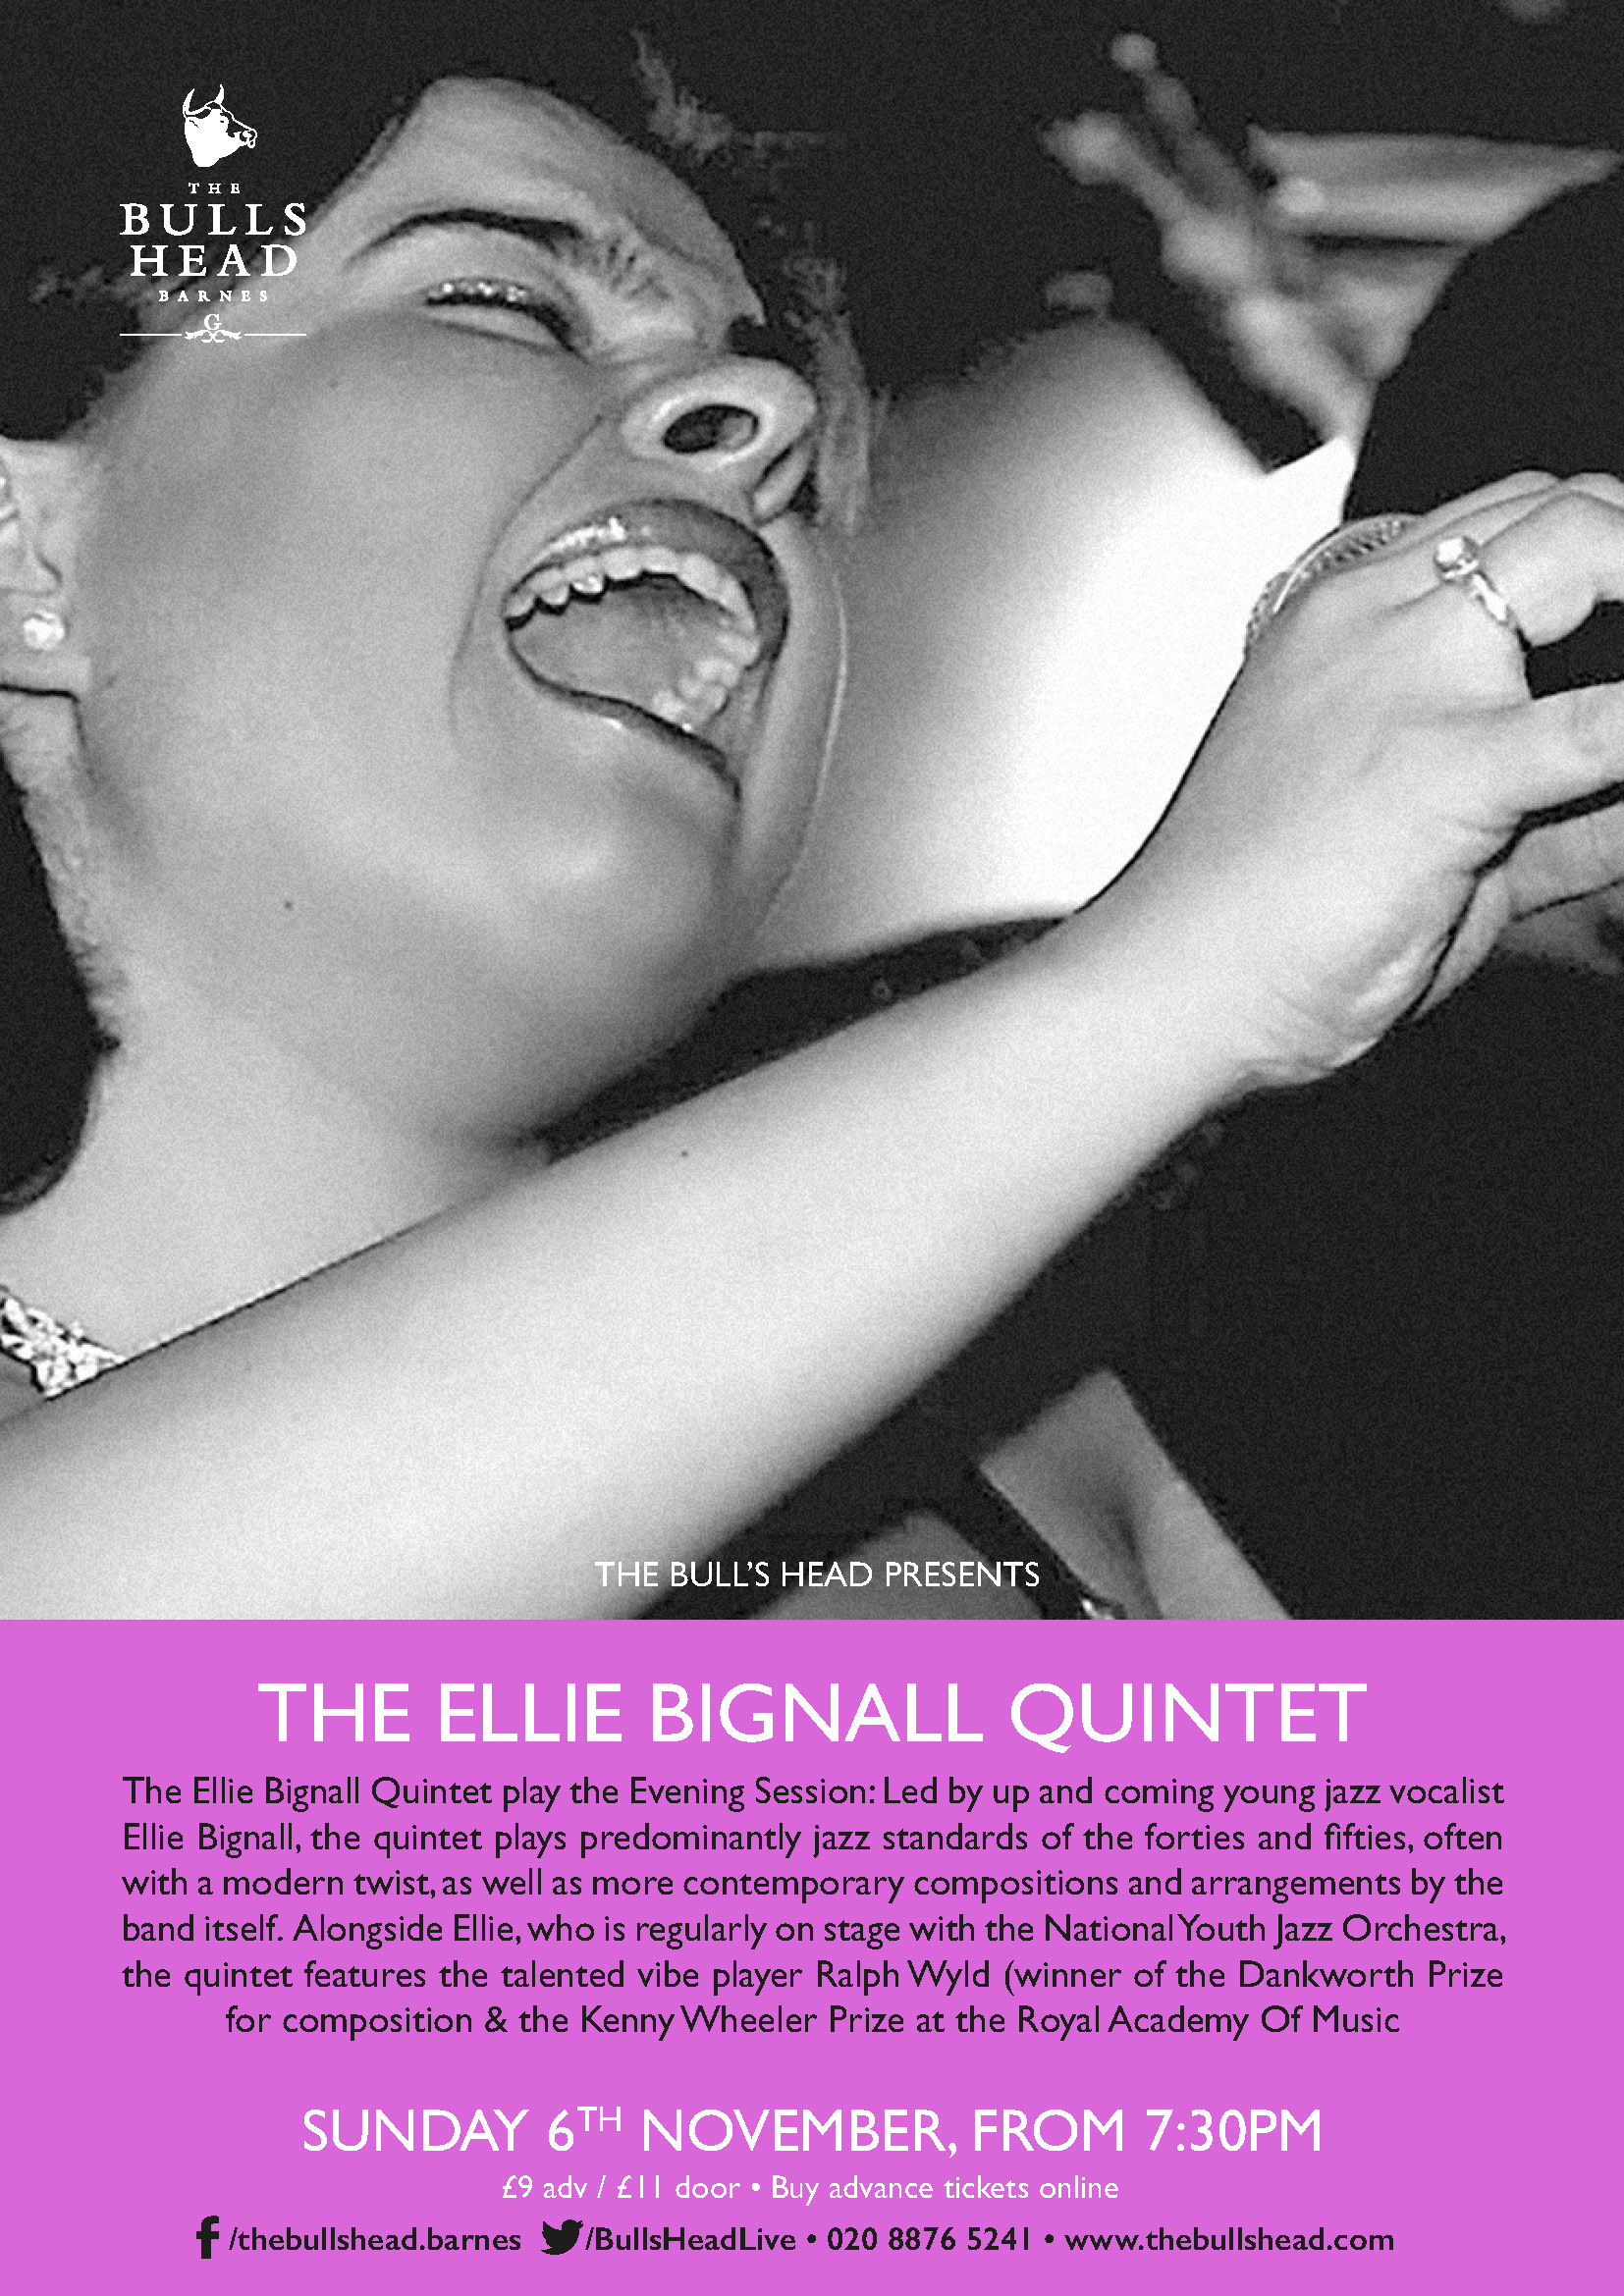 The Ellie Bignall Quintet Play The Evening Session